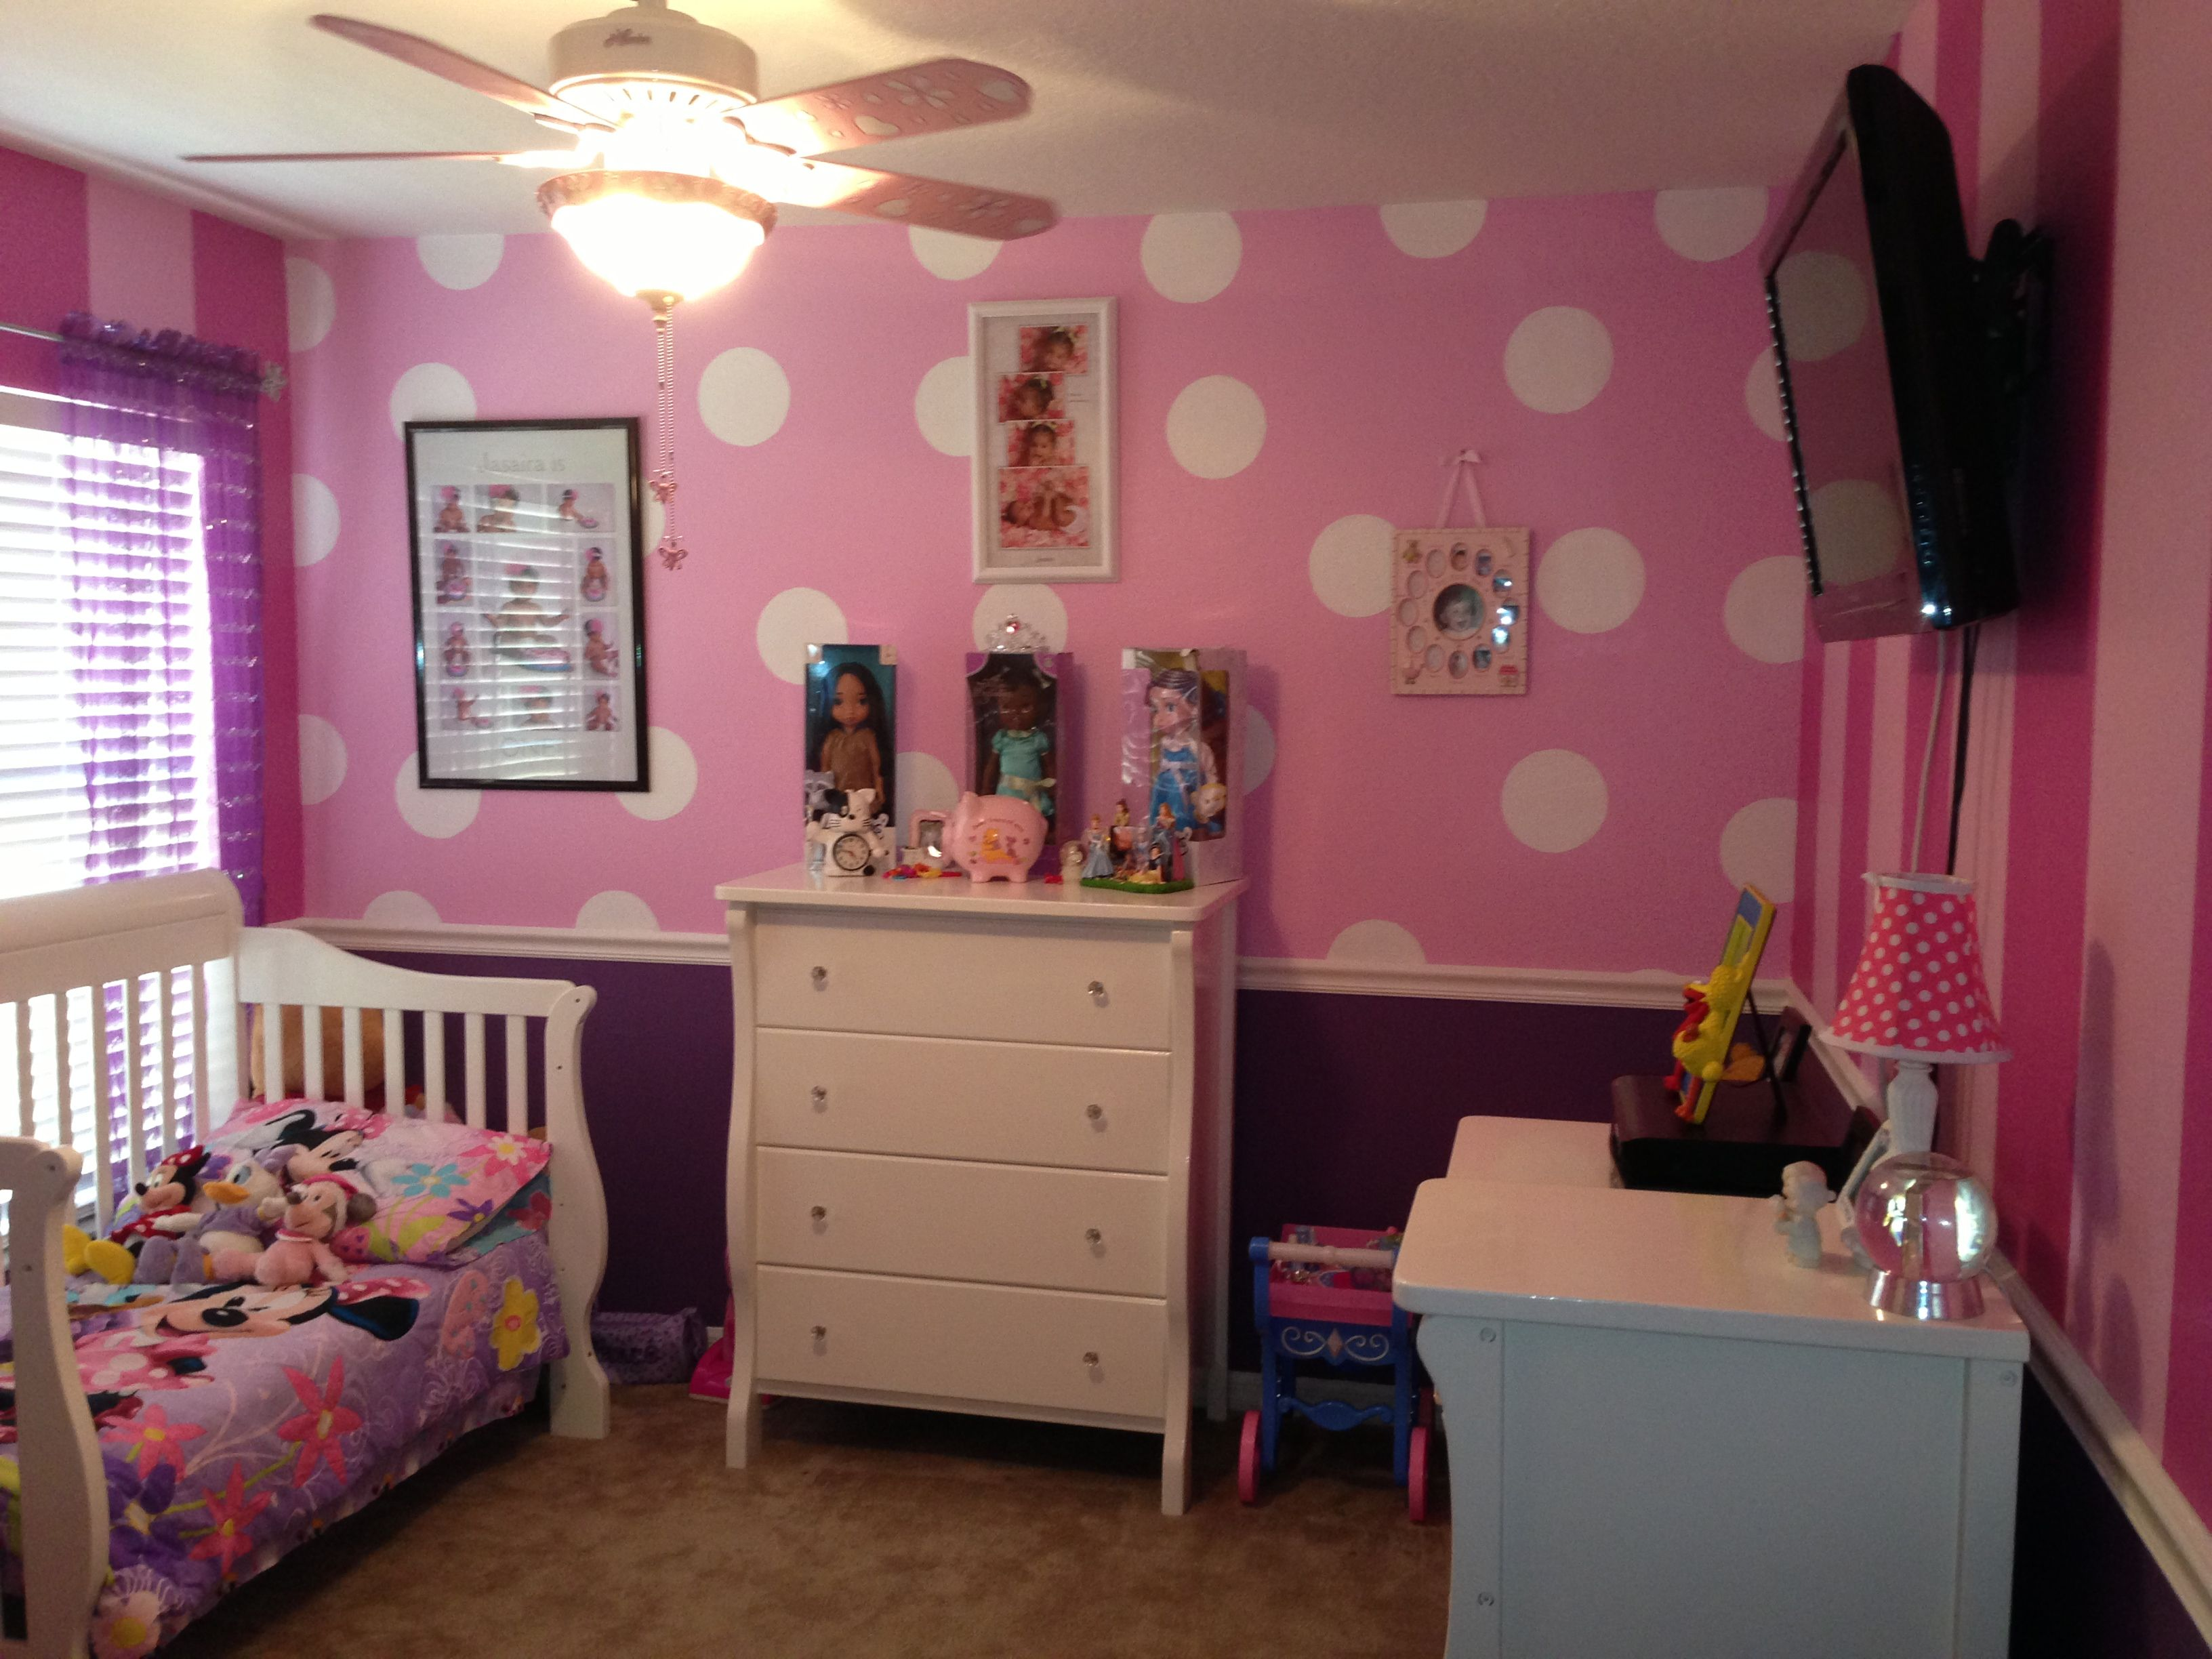 How Do It On Minnie Mouse Mice And Room - Minnie mouse bedroom decor for toddler